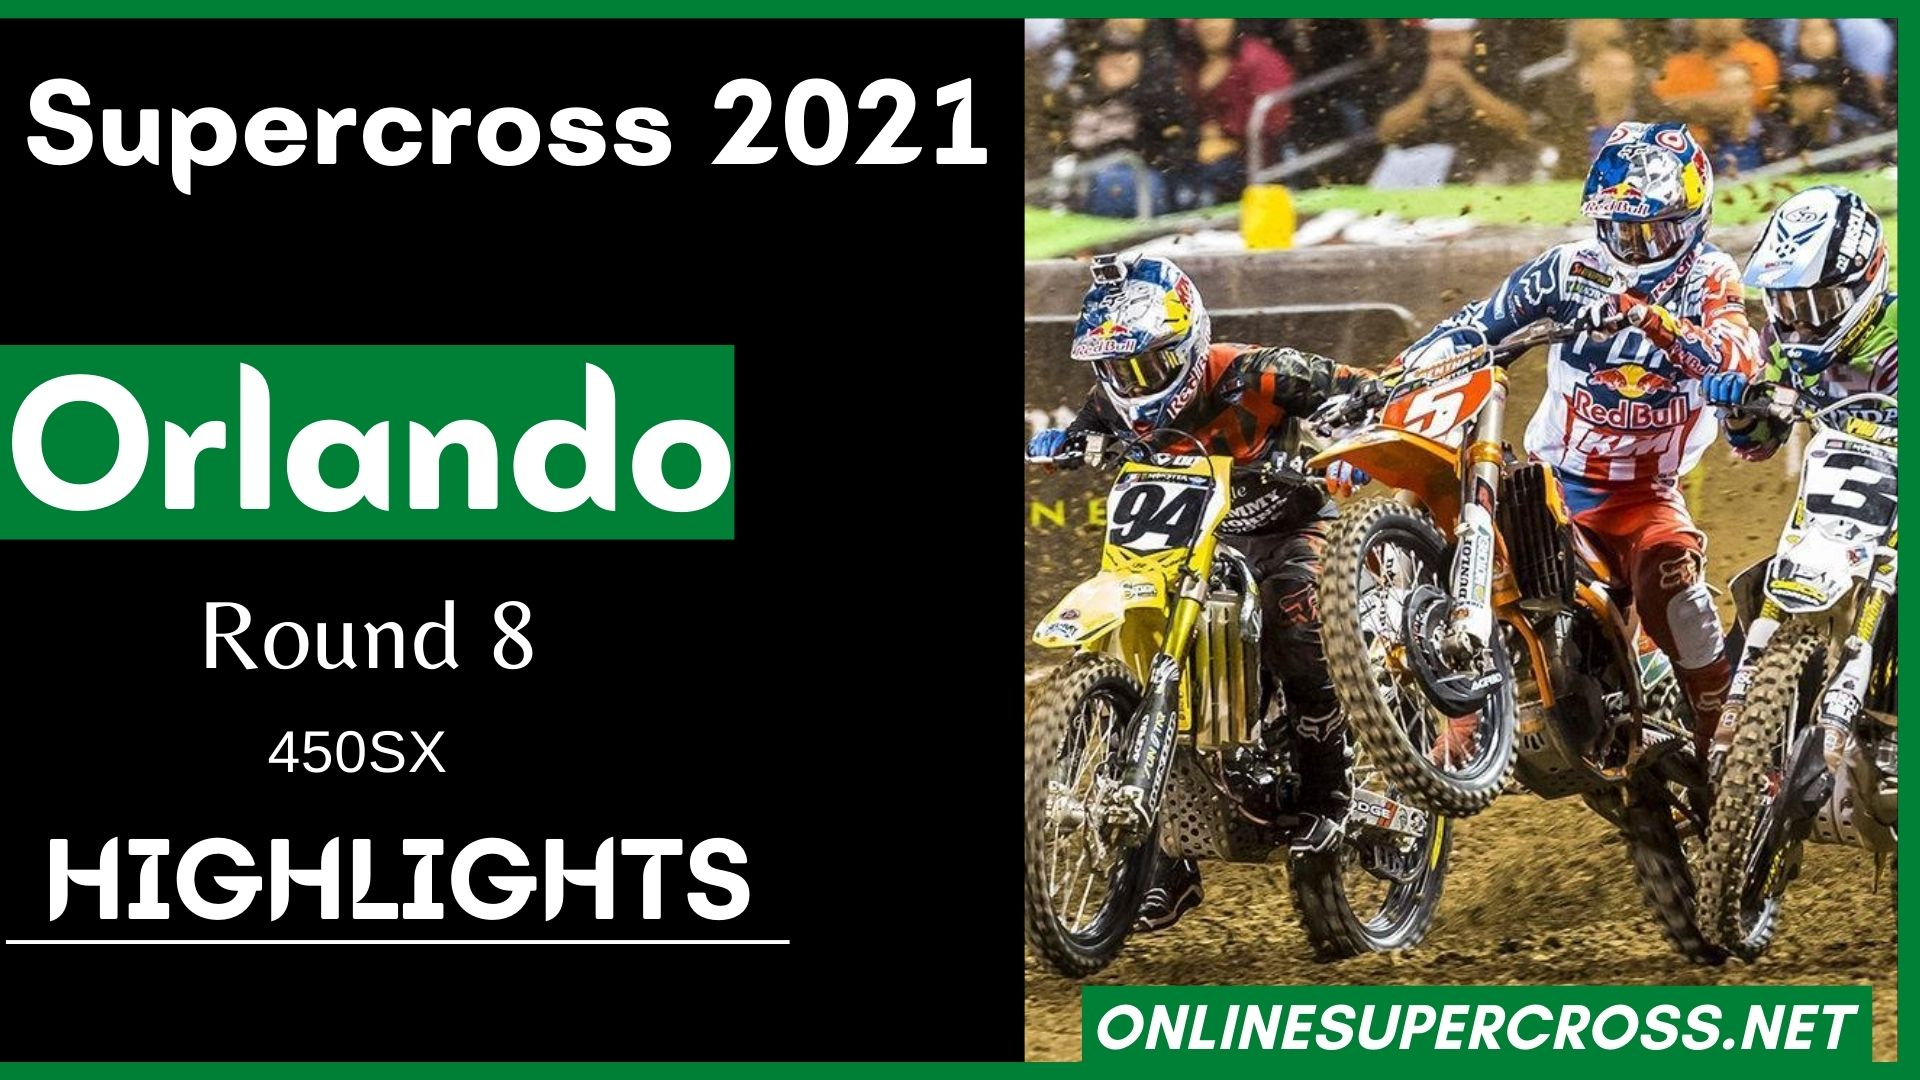 Orlando Round 8 450SX Highlights 2021 Supercross